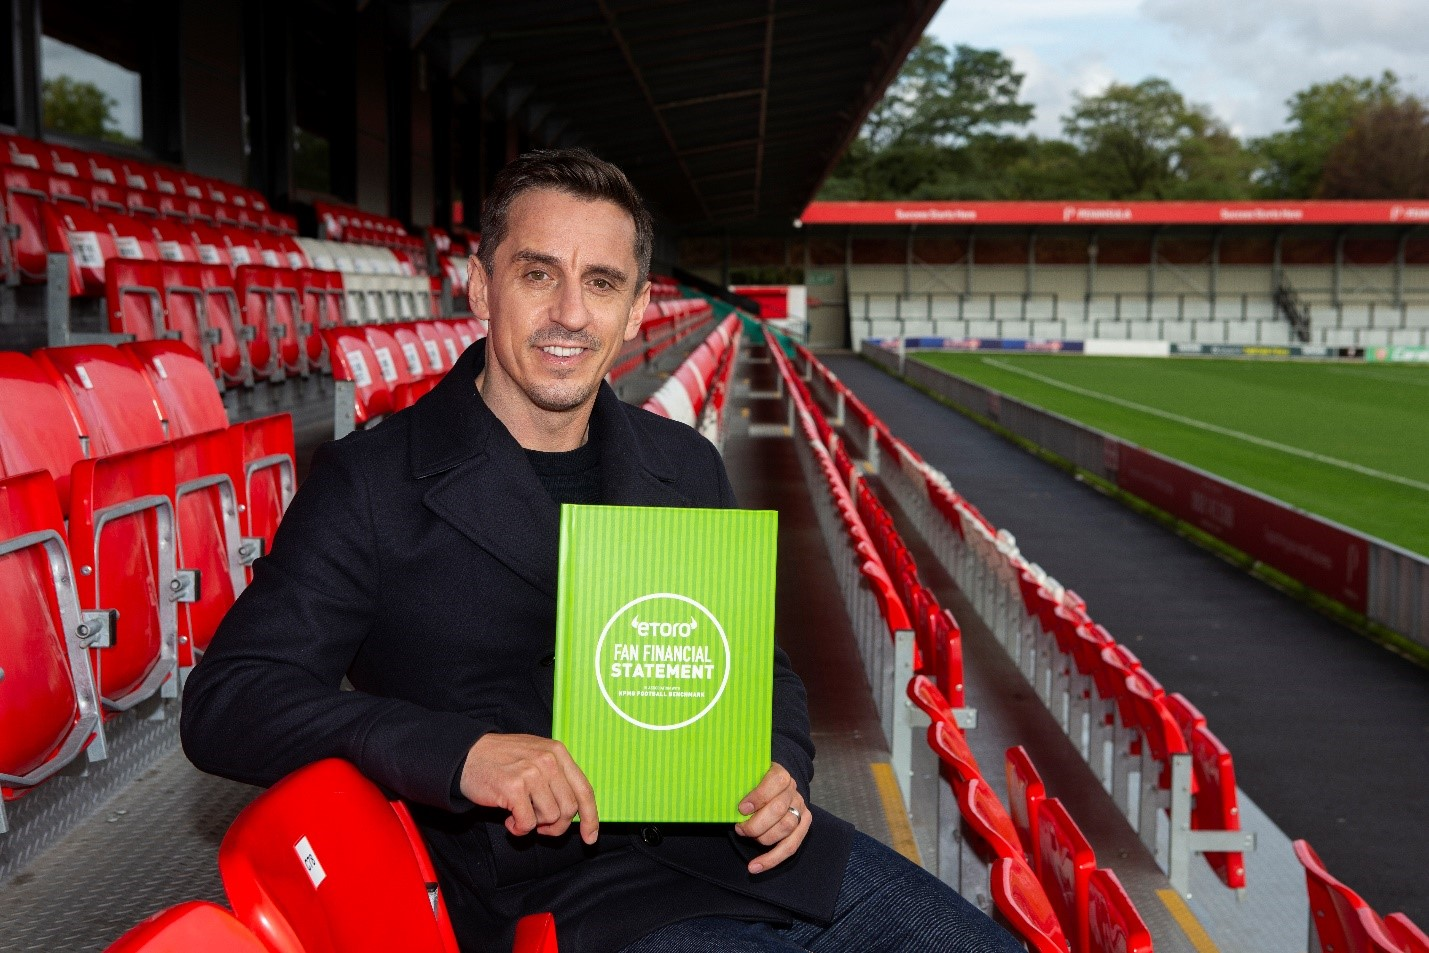 For further commentary by Gary Neville and to download the full report visit etoroFC.com